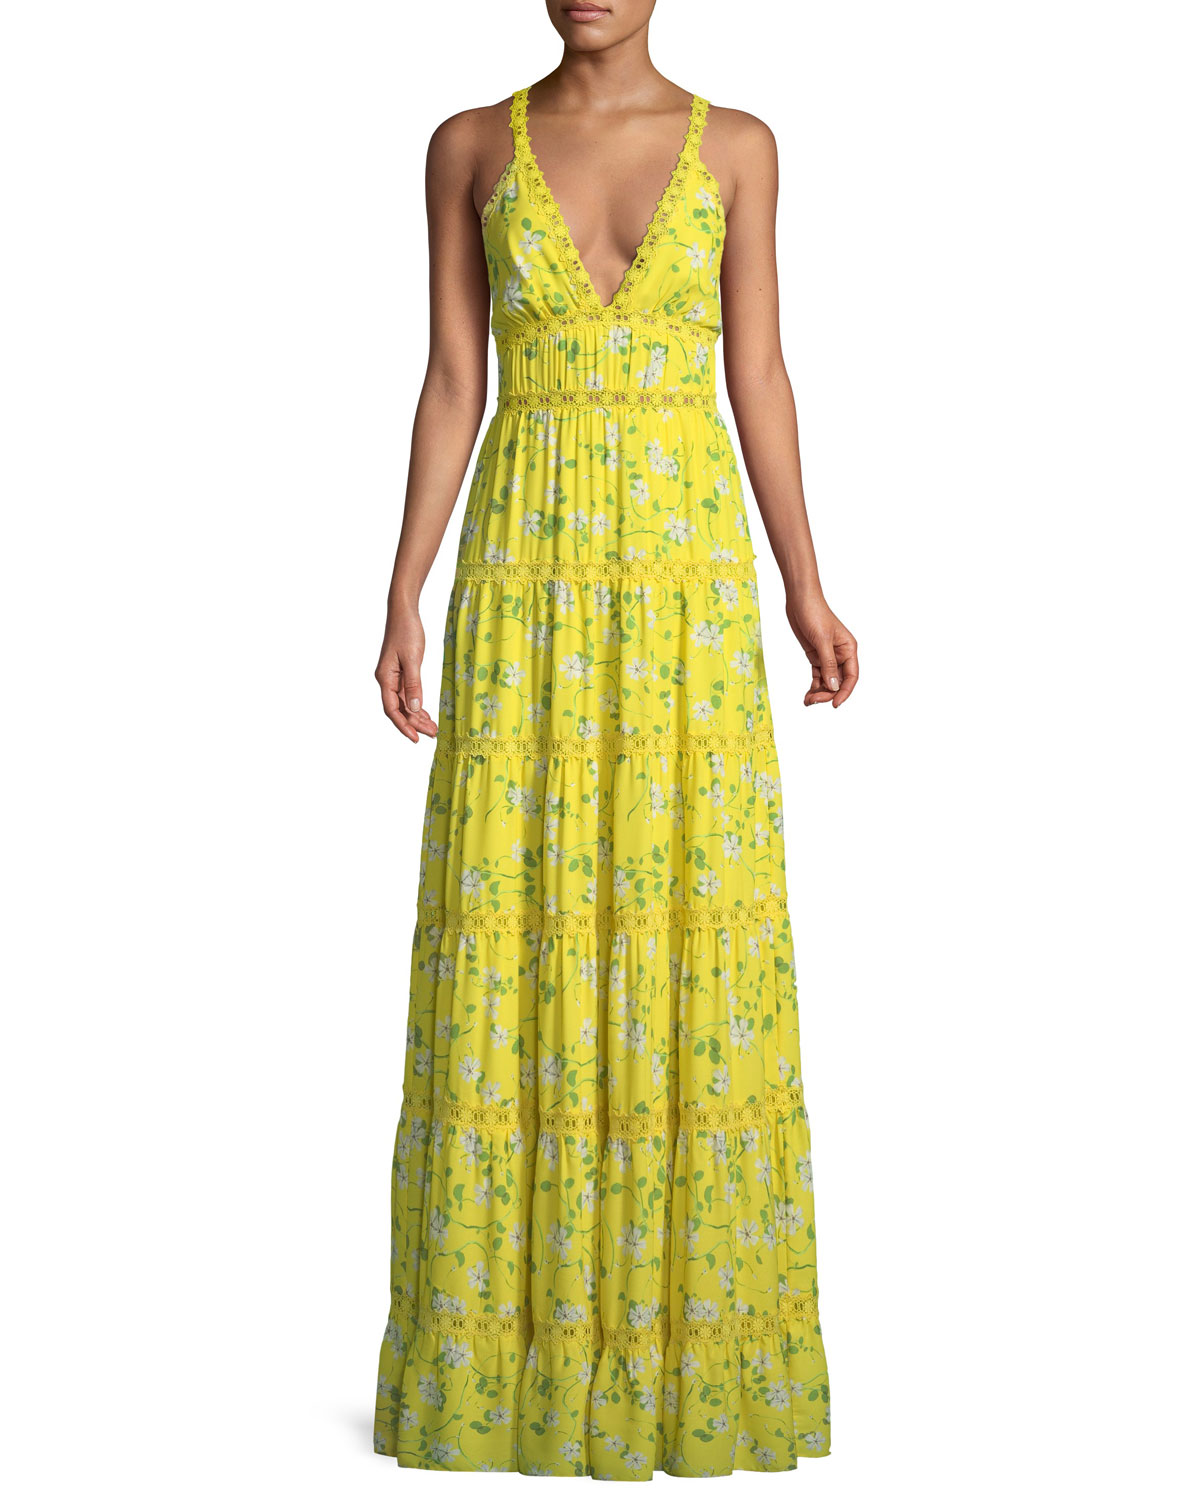 Karolina Crochet-trimmed Floral-print Chiffon Maxi Dress - Bright yellow Alice & Olivia bd2kJL